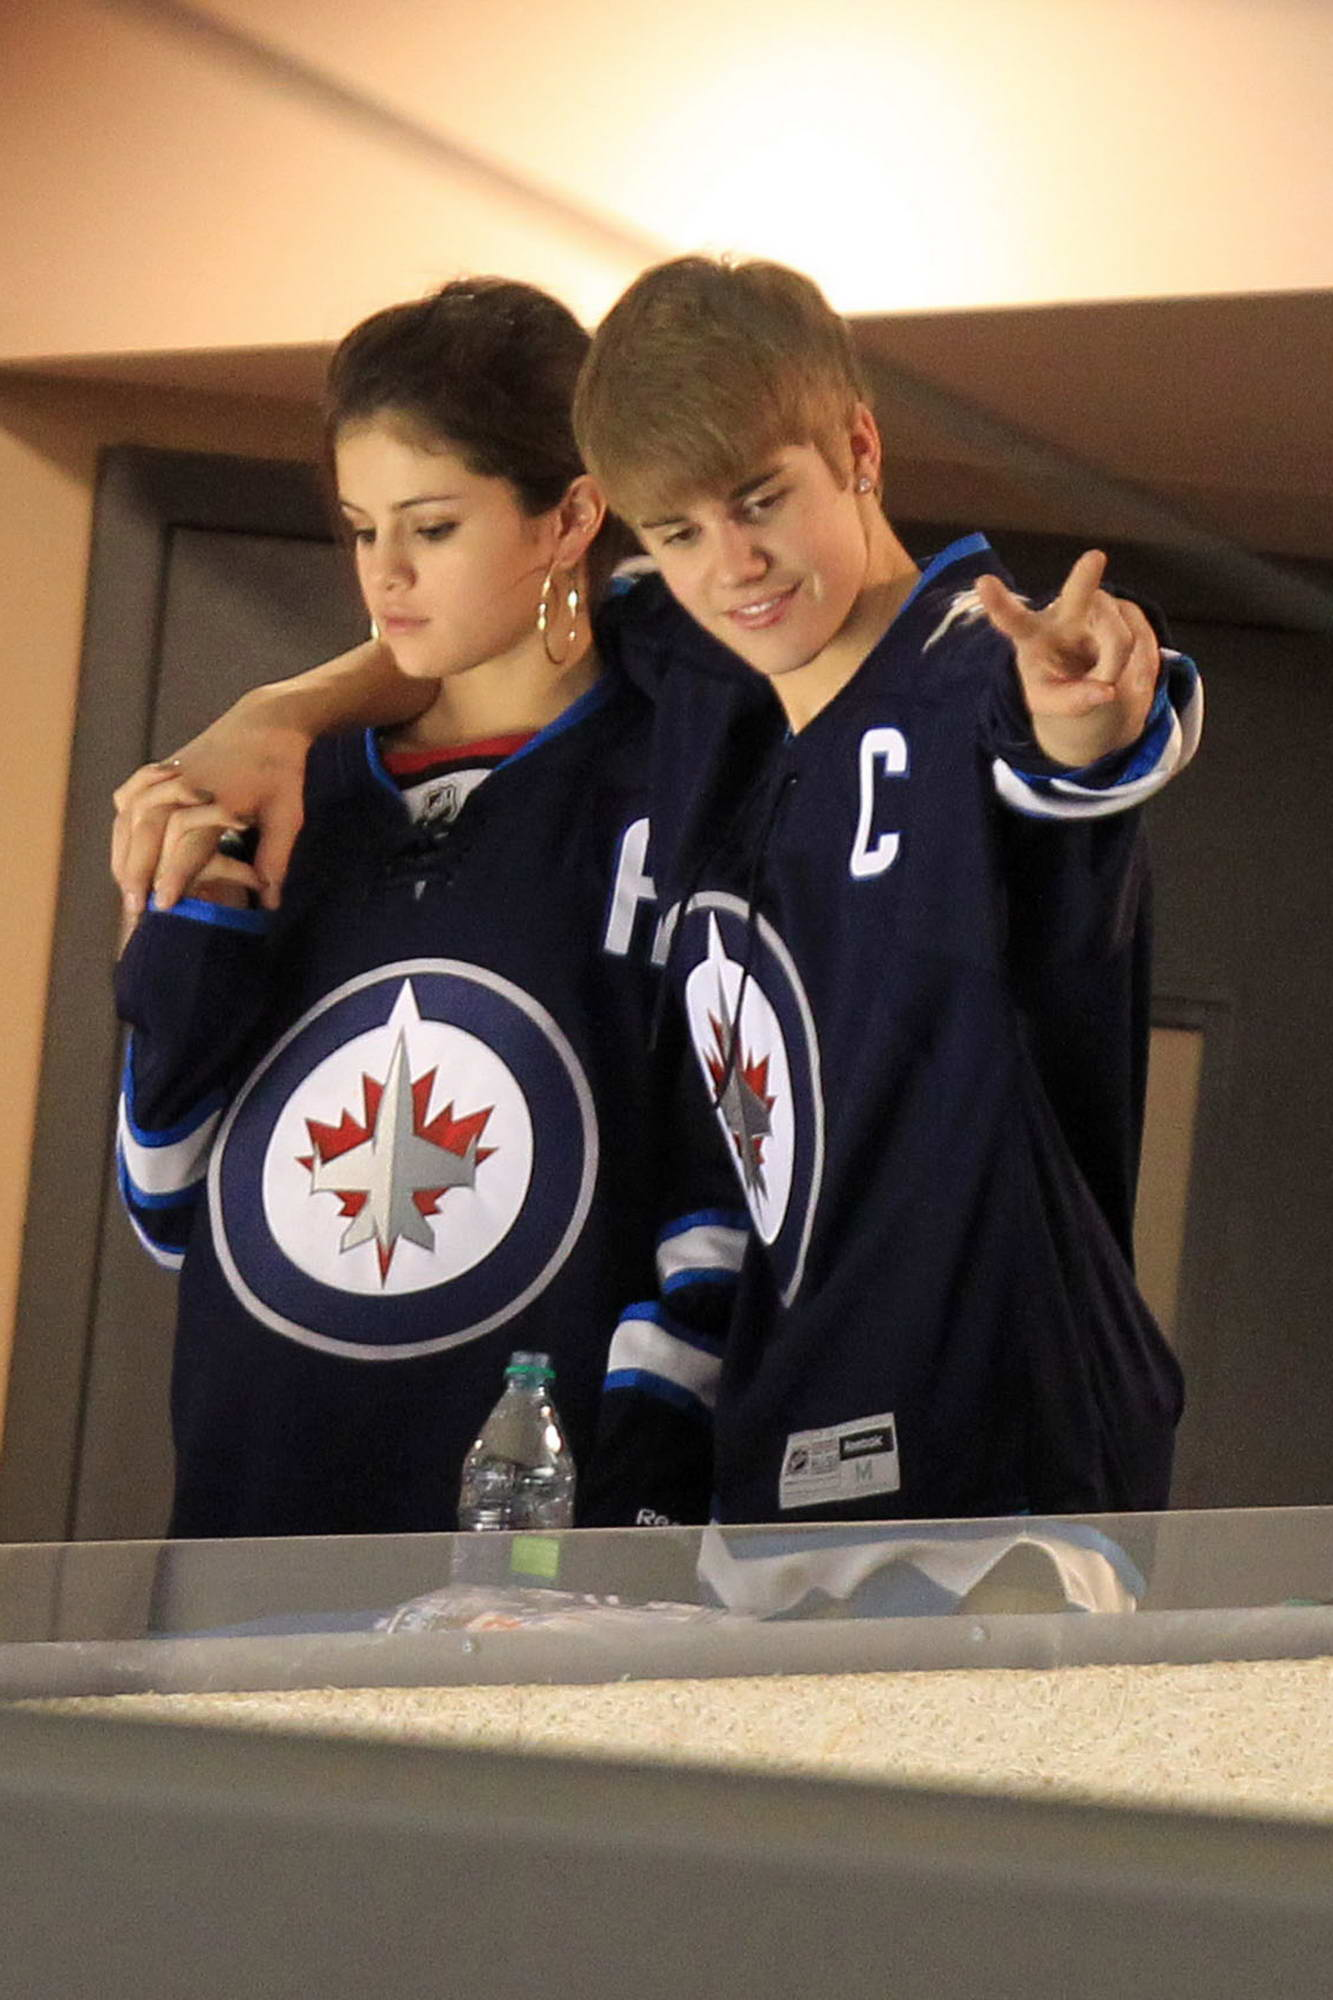 Selena Gomez And Justin Bieber At Winnipeg Jets Hockey